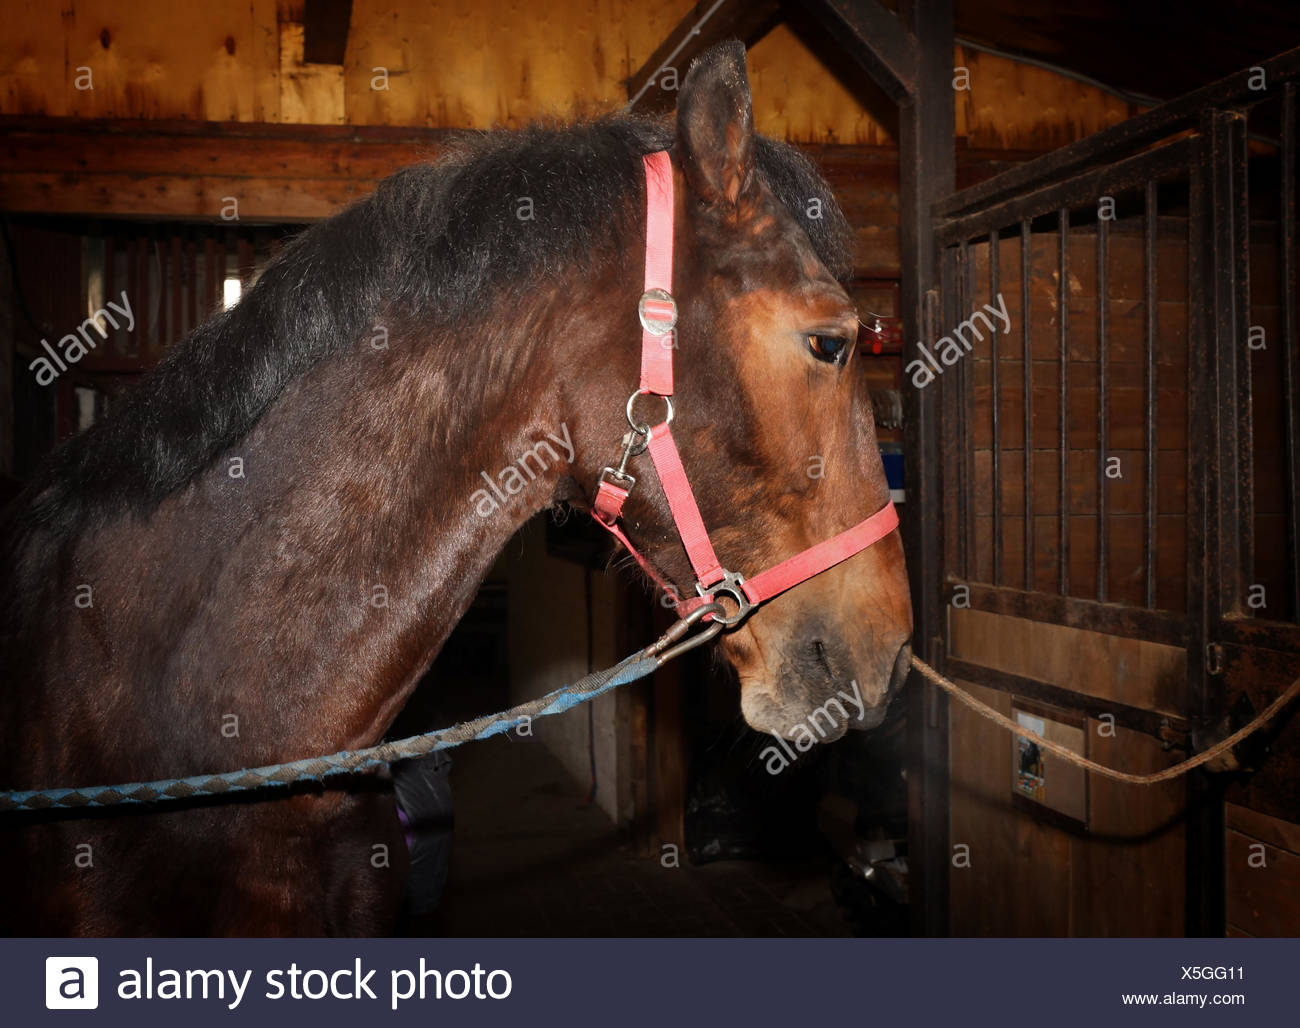 Bay horse with harness standing in the stall - Stock Image